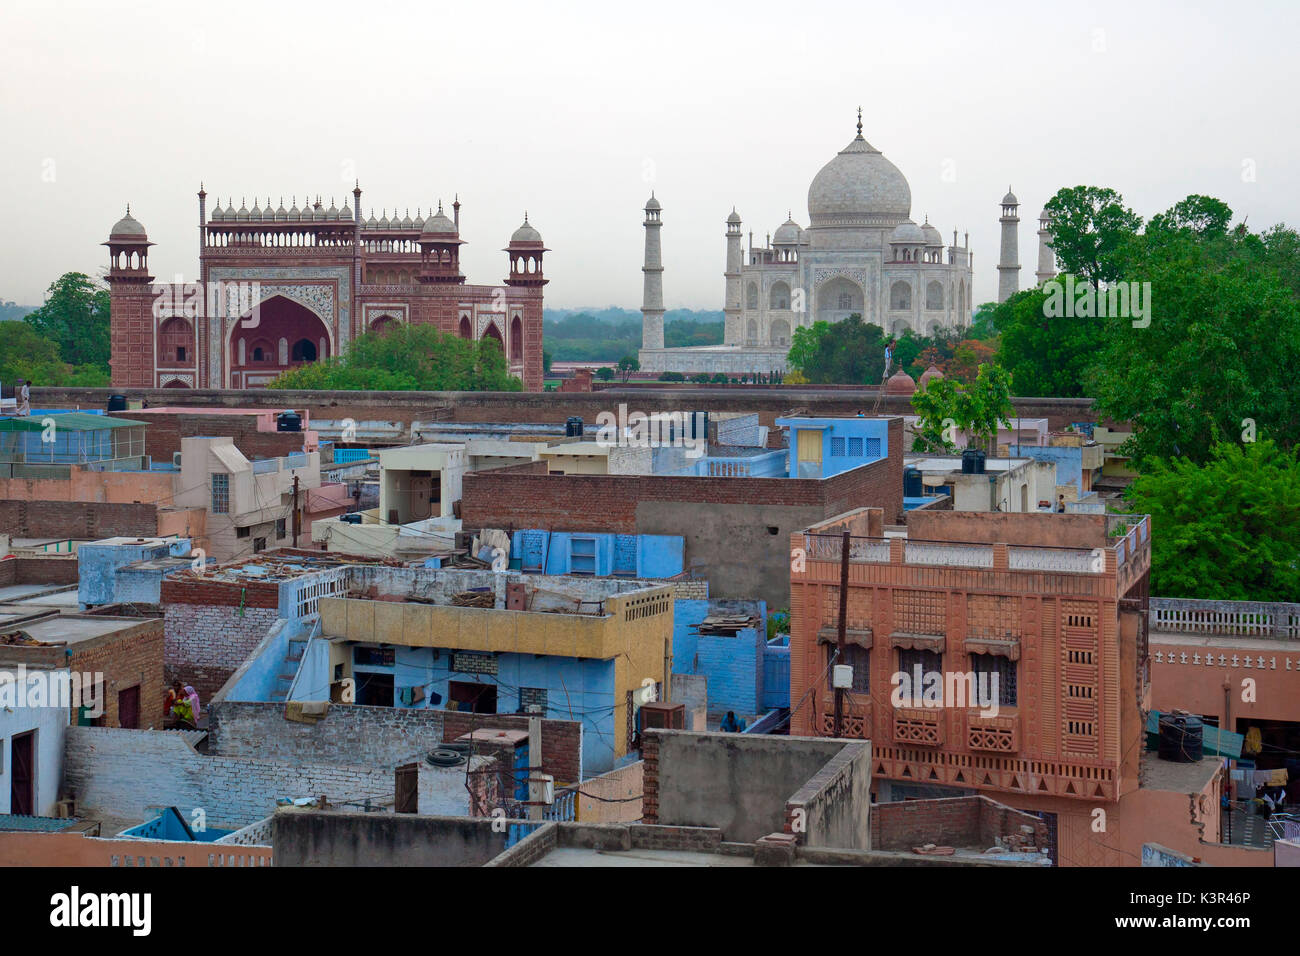 The homes of the poor contrasting with the splendor of the Taj Mahal  Agra, India - Stock Image